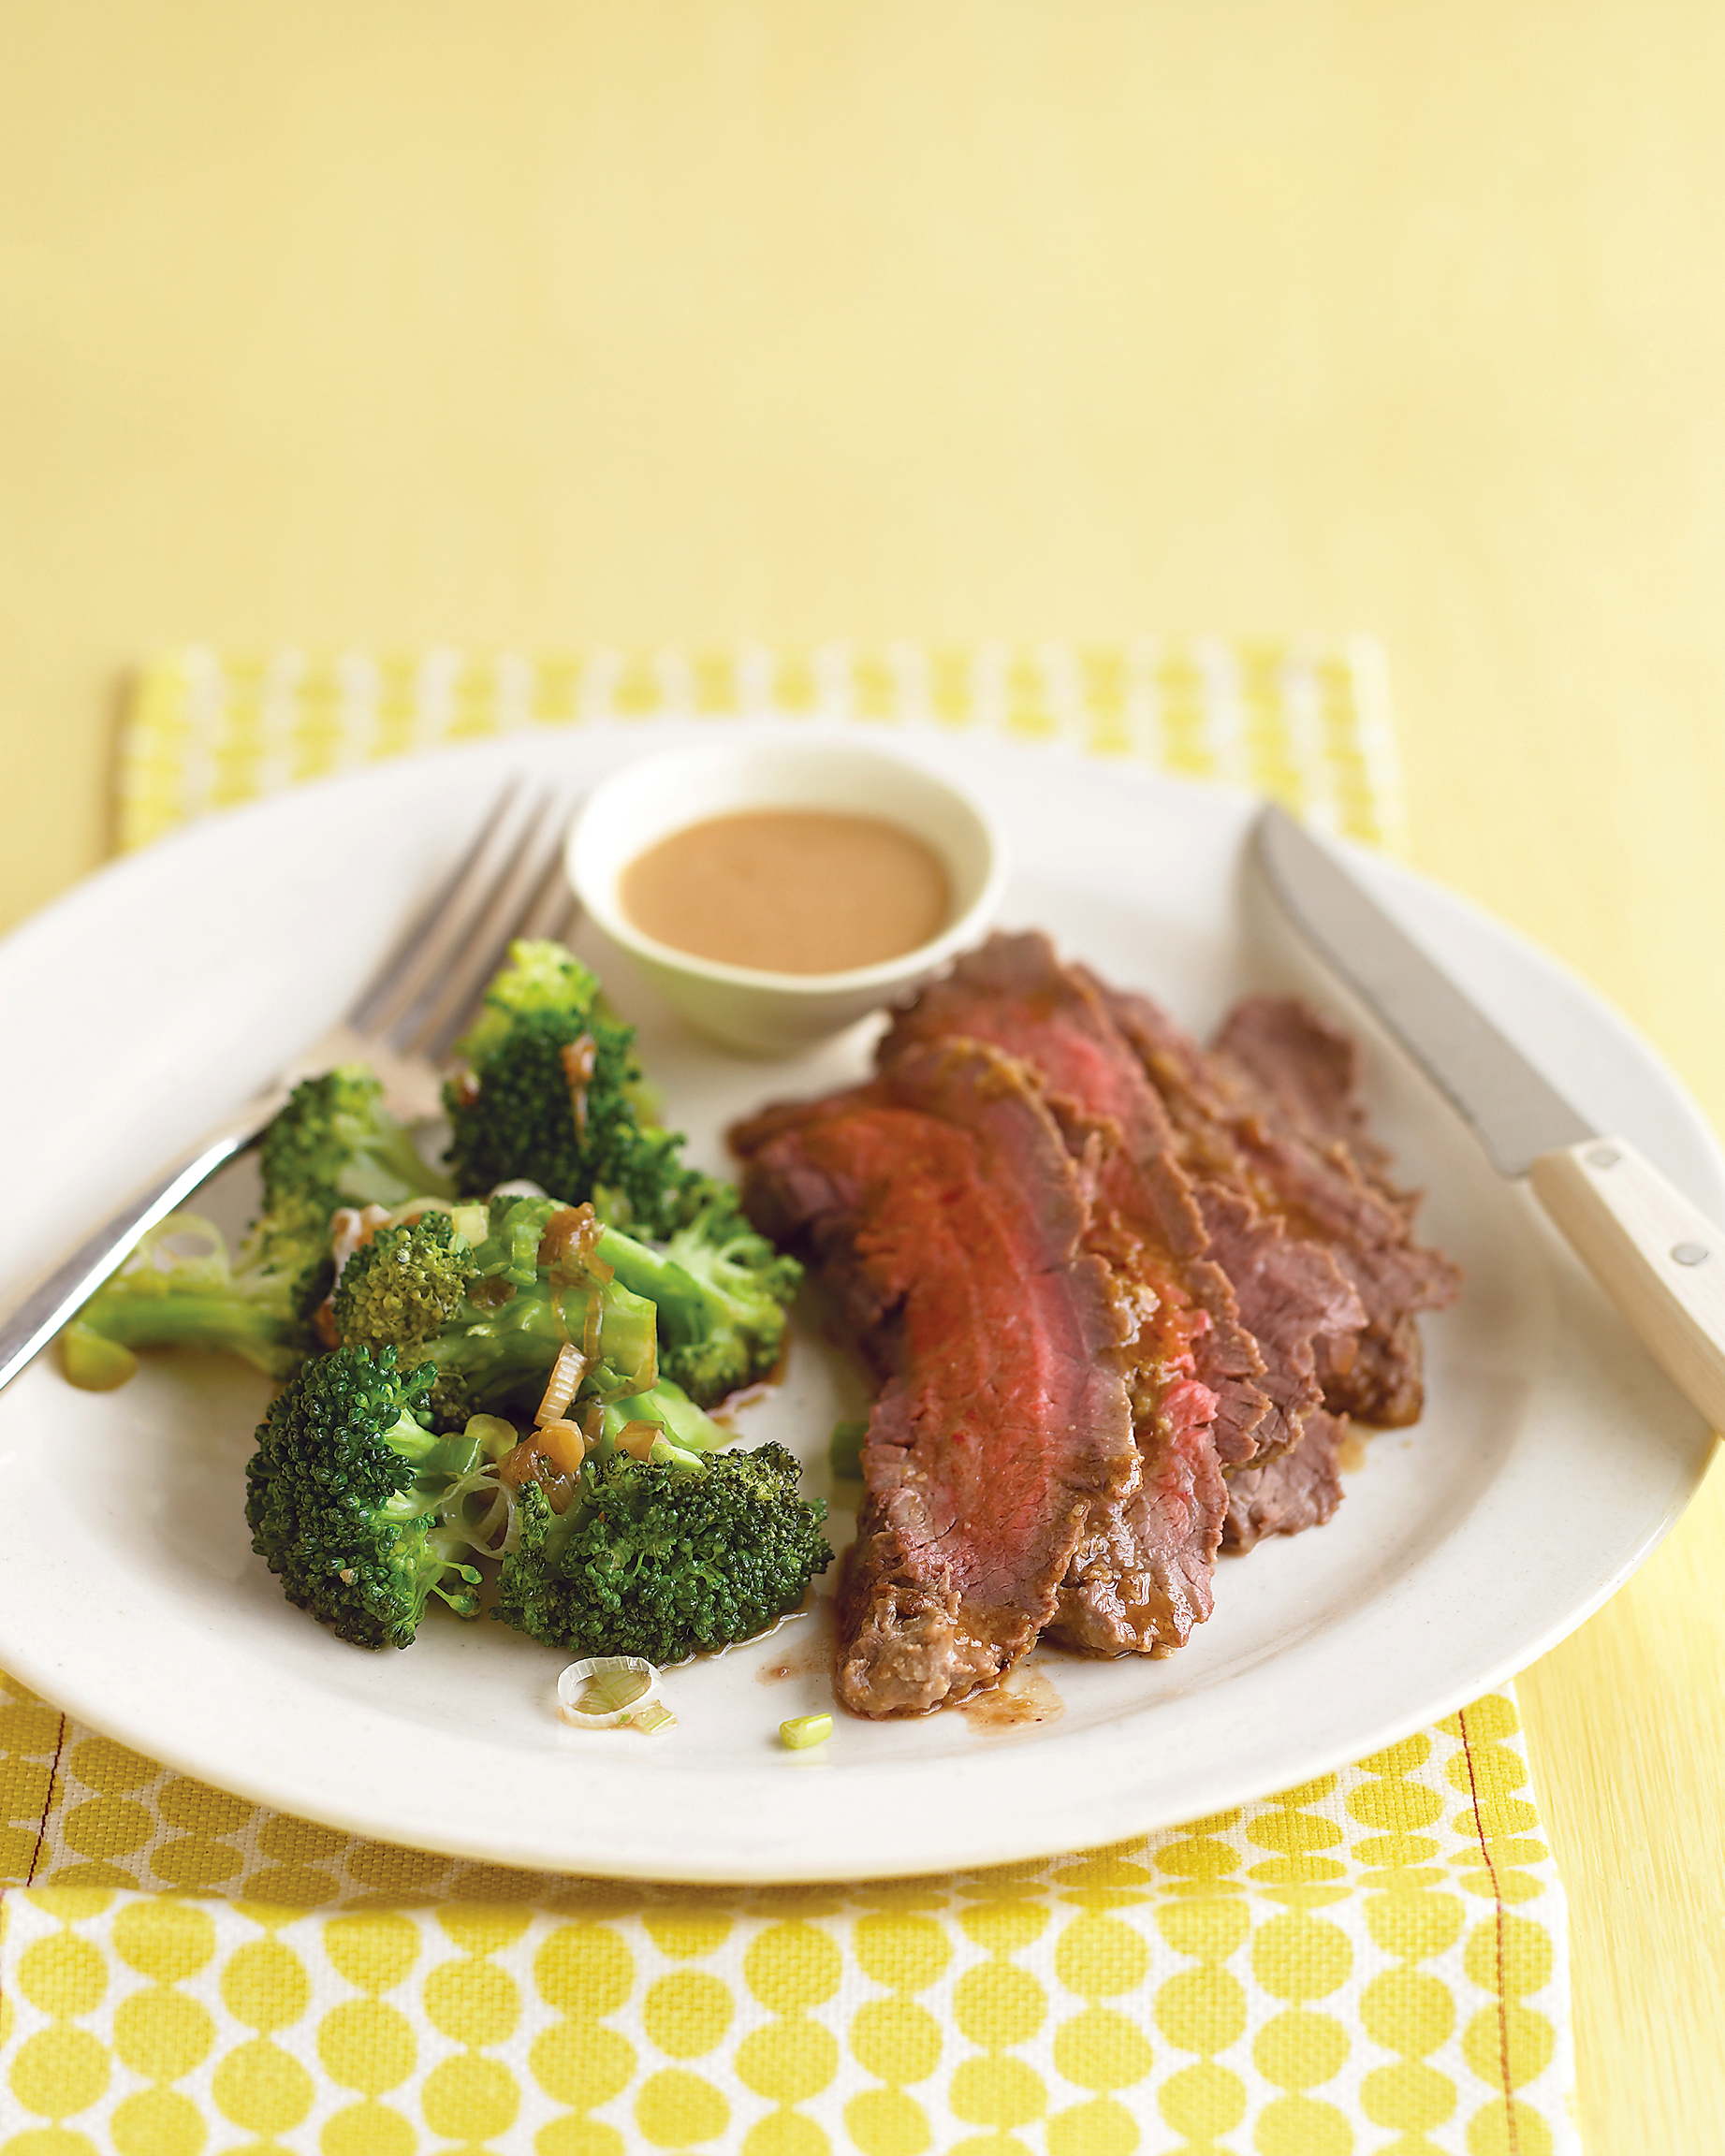 Steak with Peanut Sauce and Broccoli